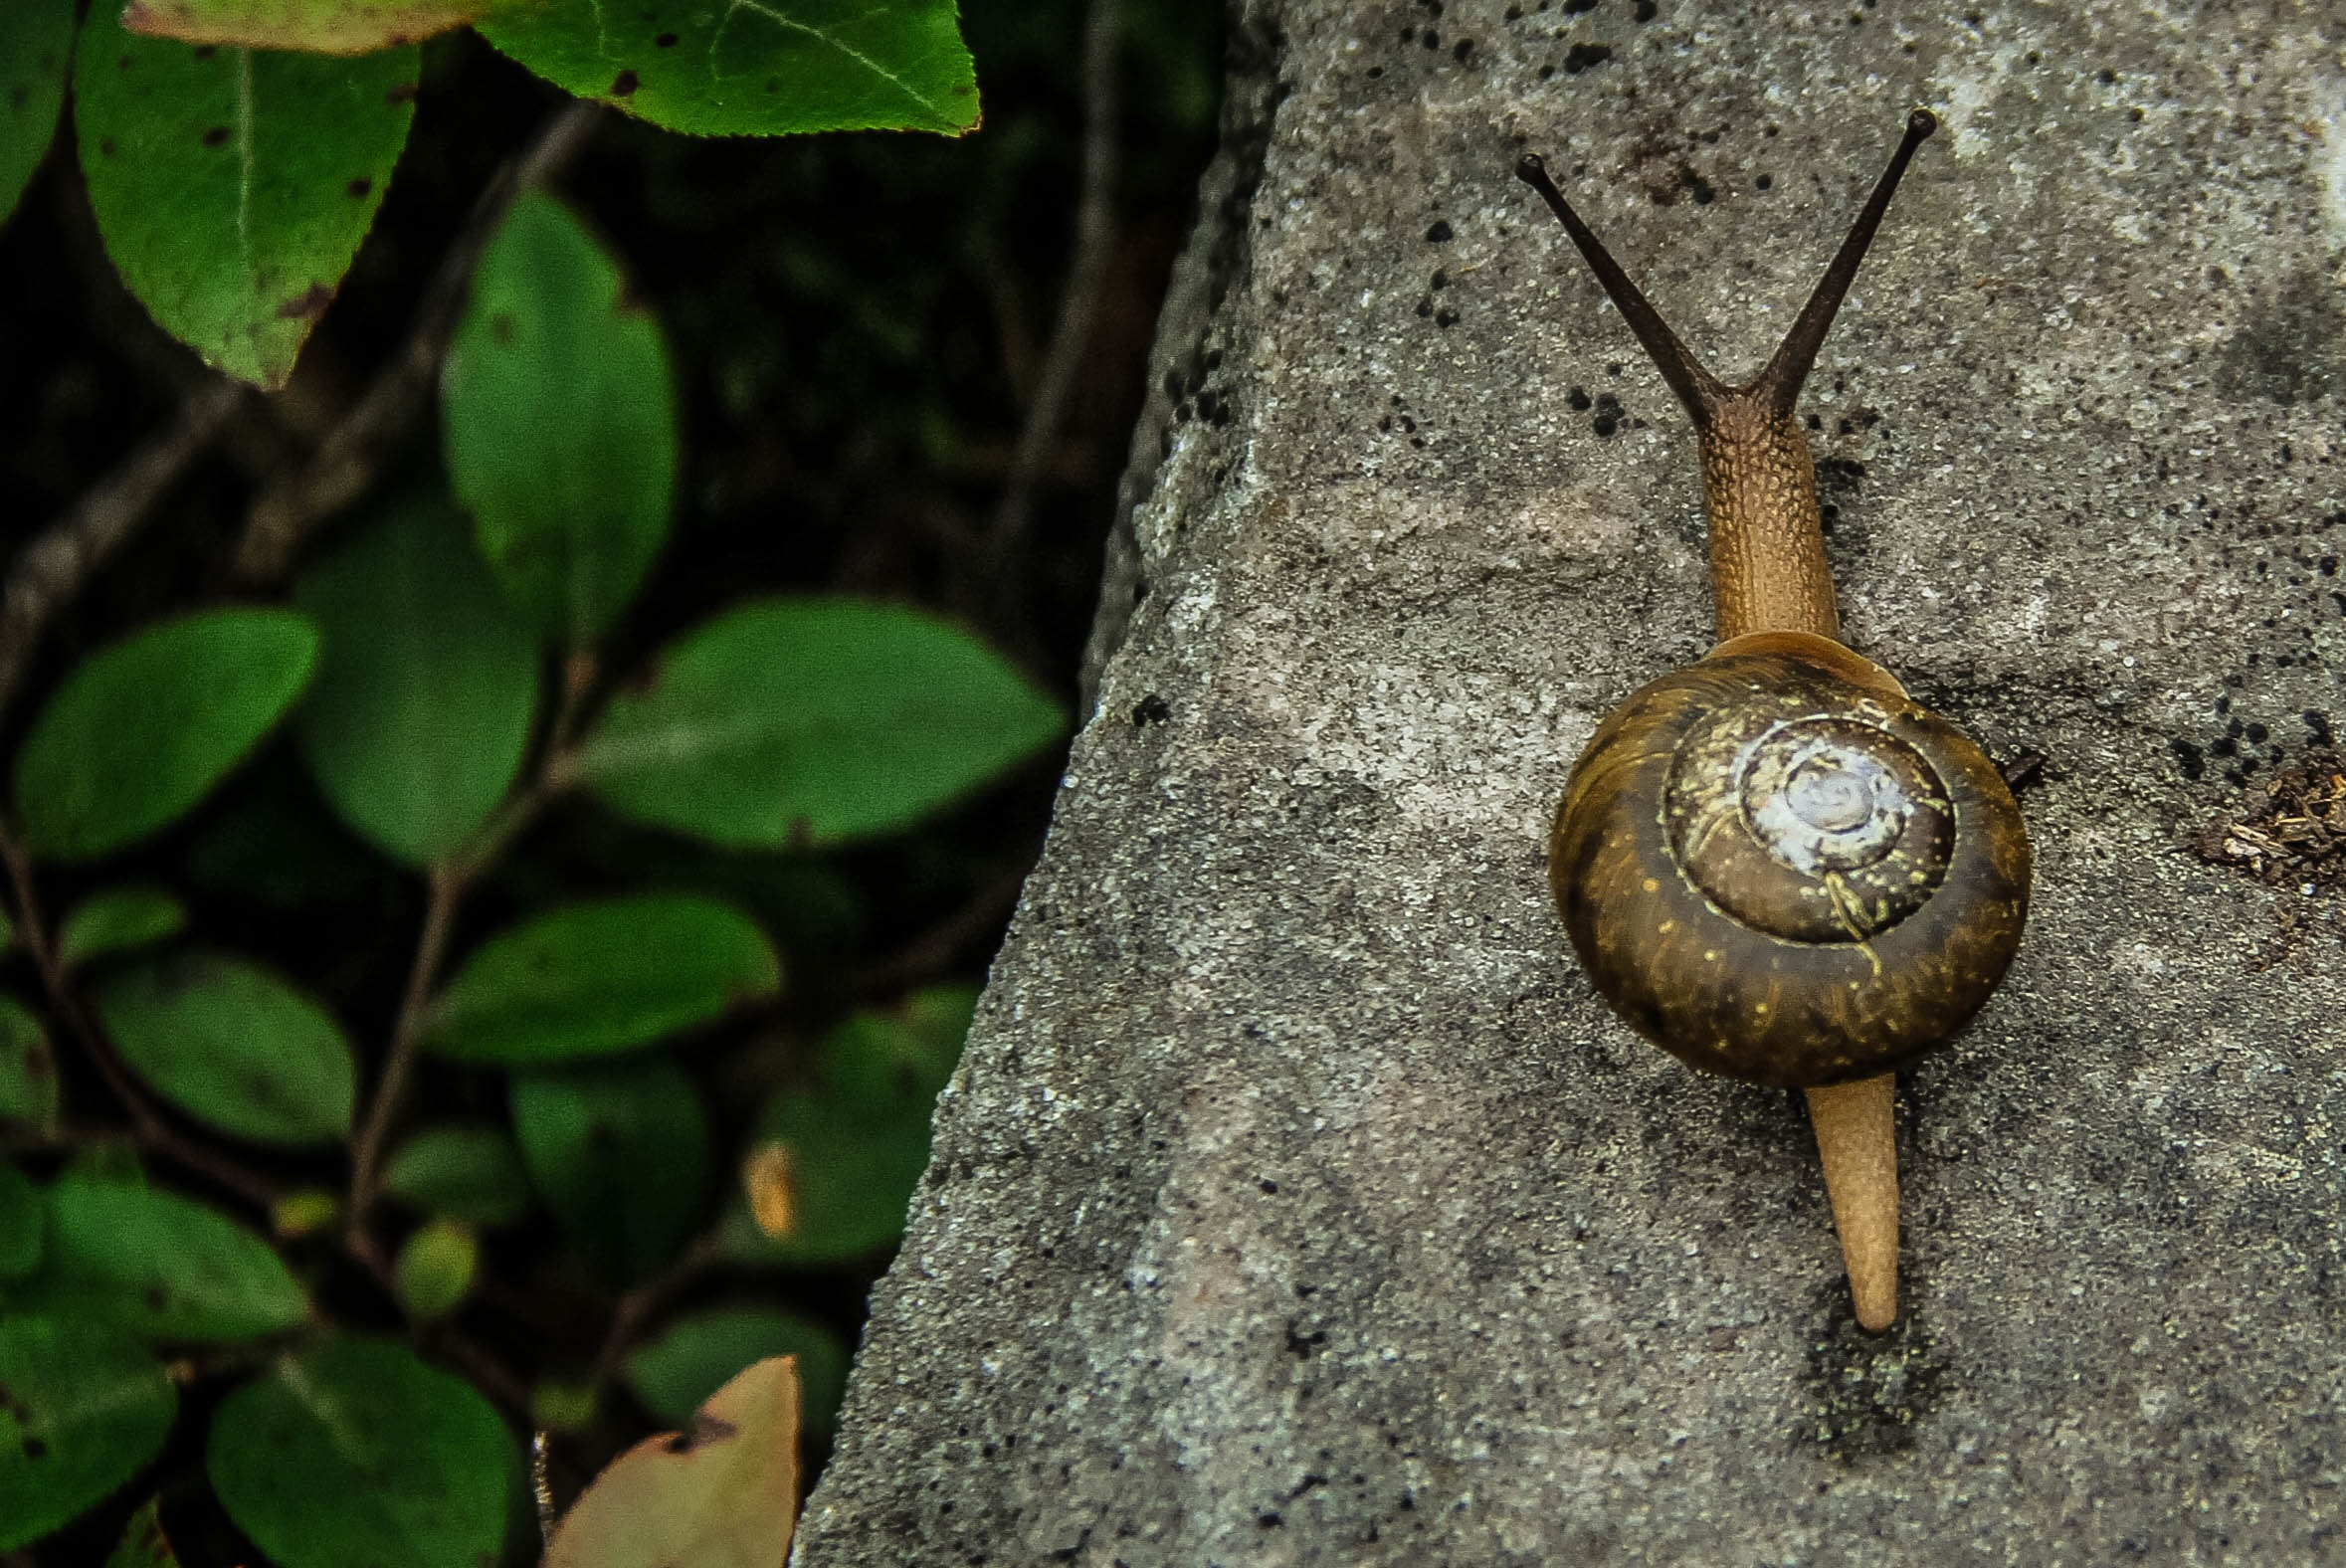 brown snail in rule of thirds photography